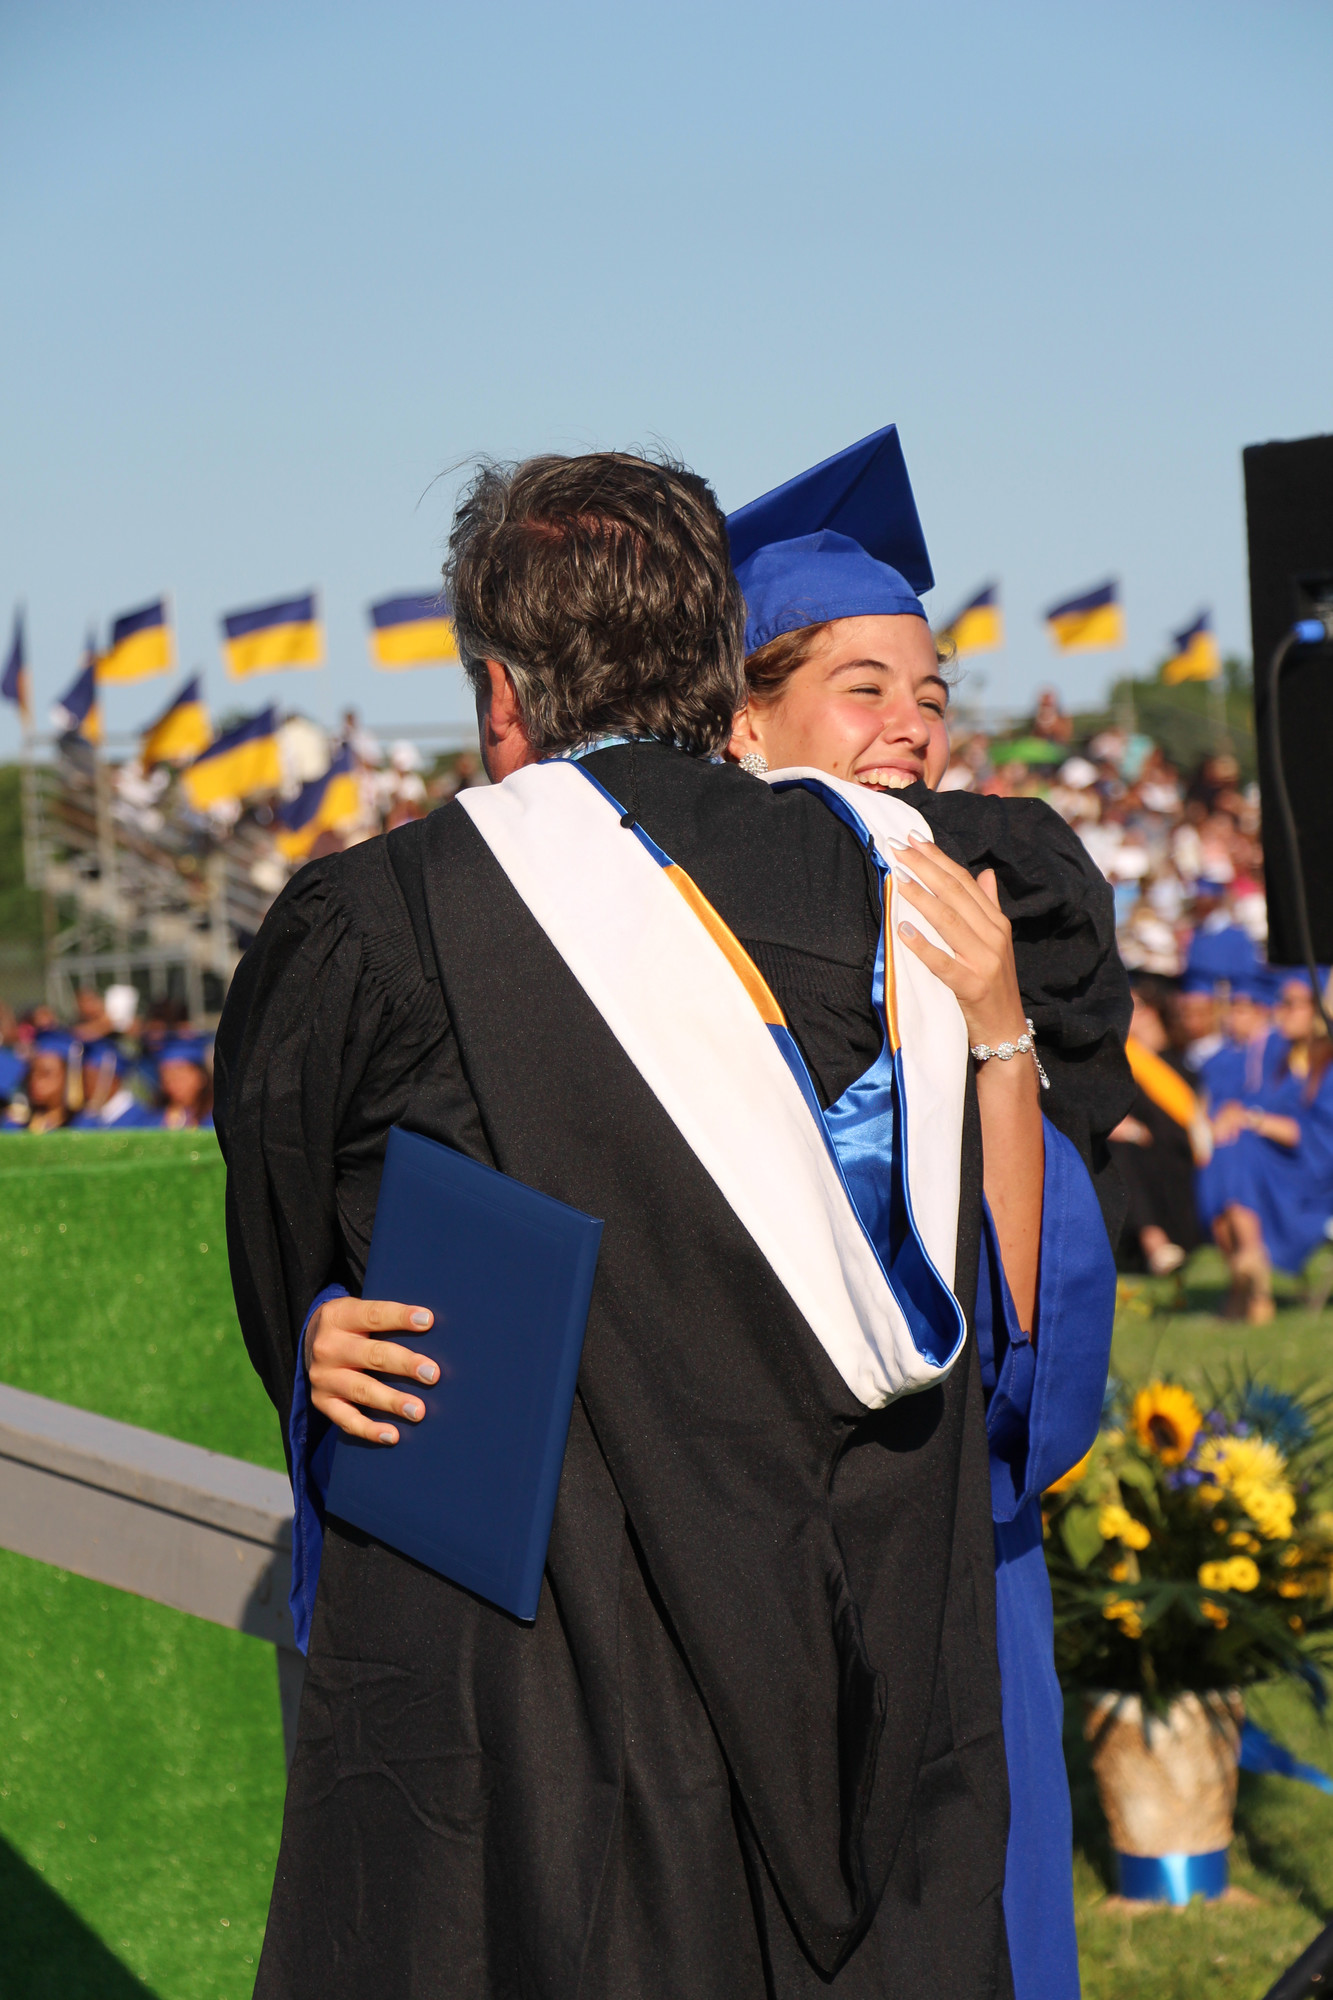 Brittney Scannell got her diploma, then got a big hug from her uncle, Superintendent James Scannell.